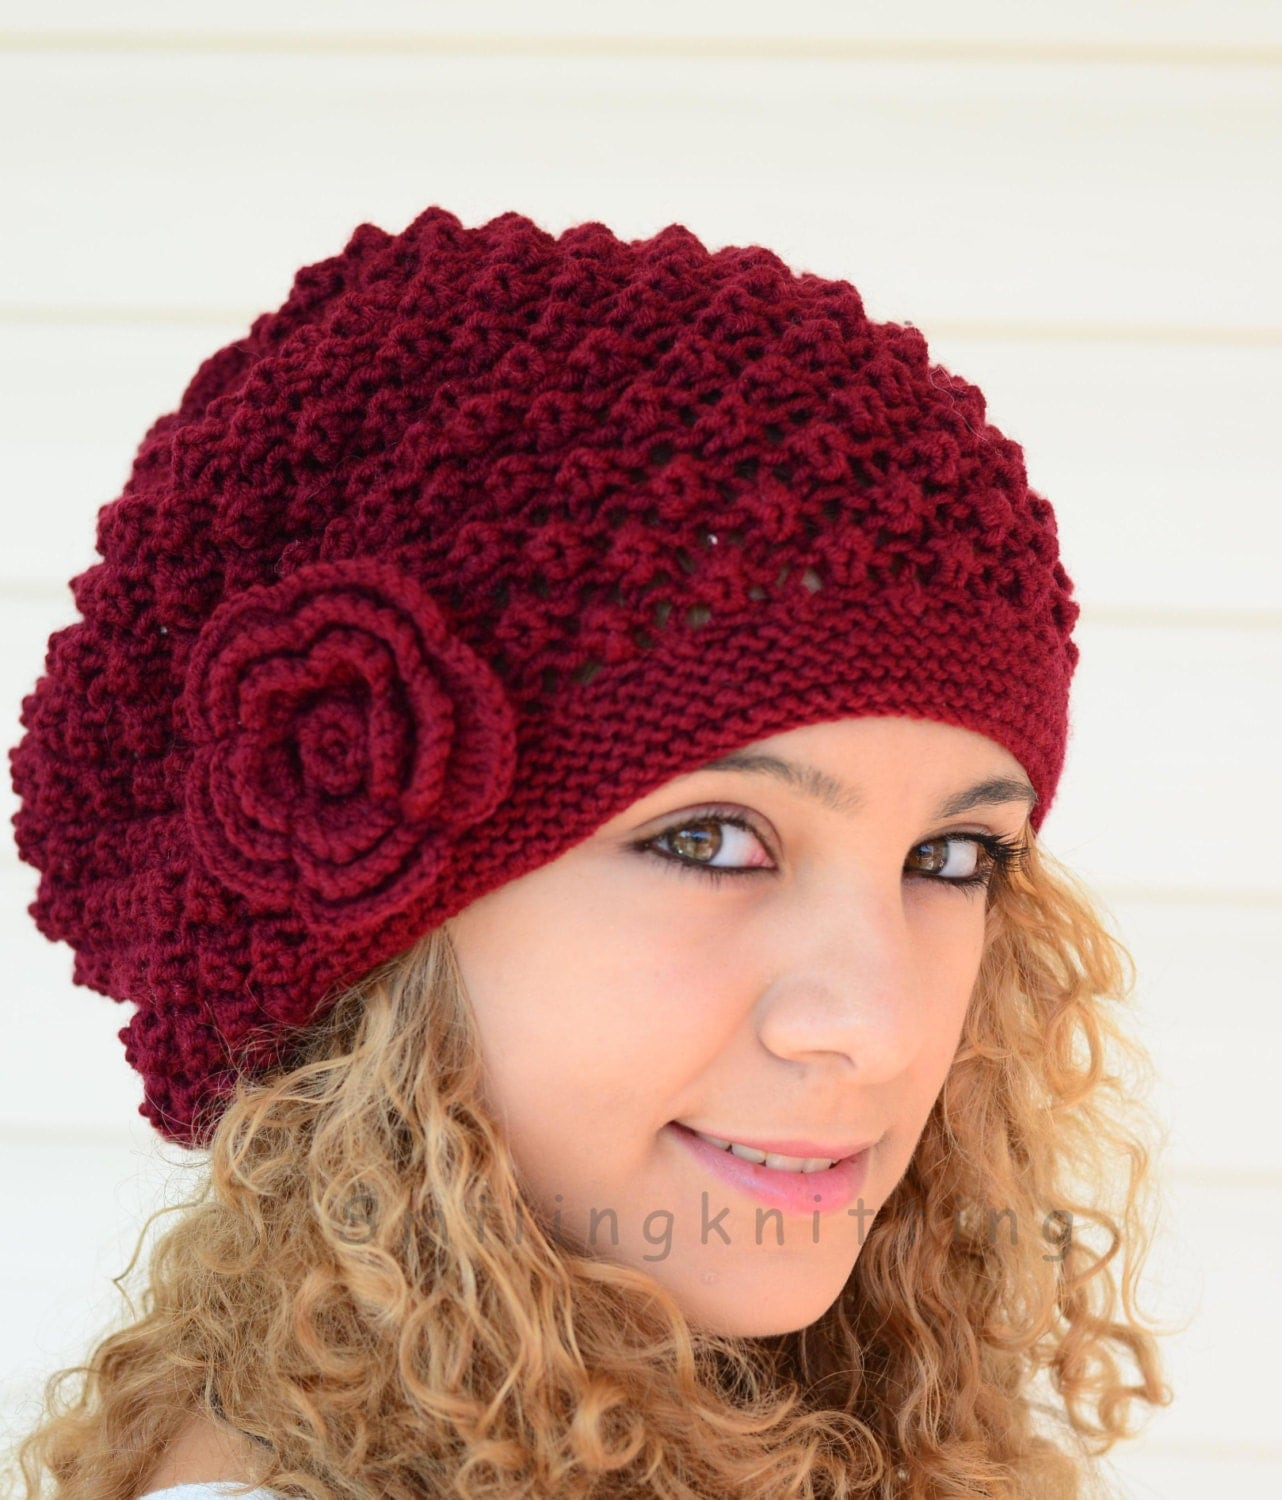 Knitting Patterns For Berets And Hats : Hand Knitted Hat Burgundy Knit HatSlouchy Hat Beret